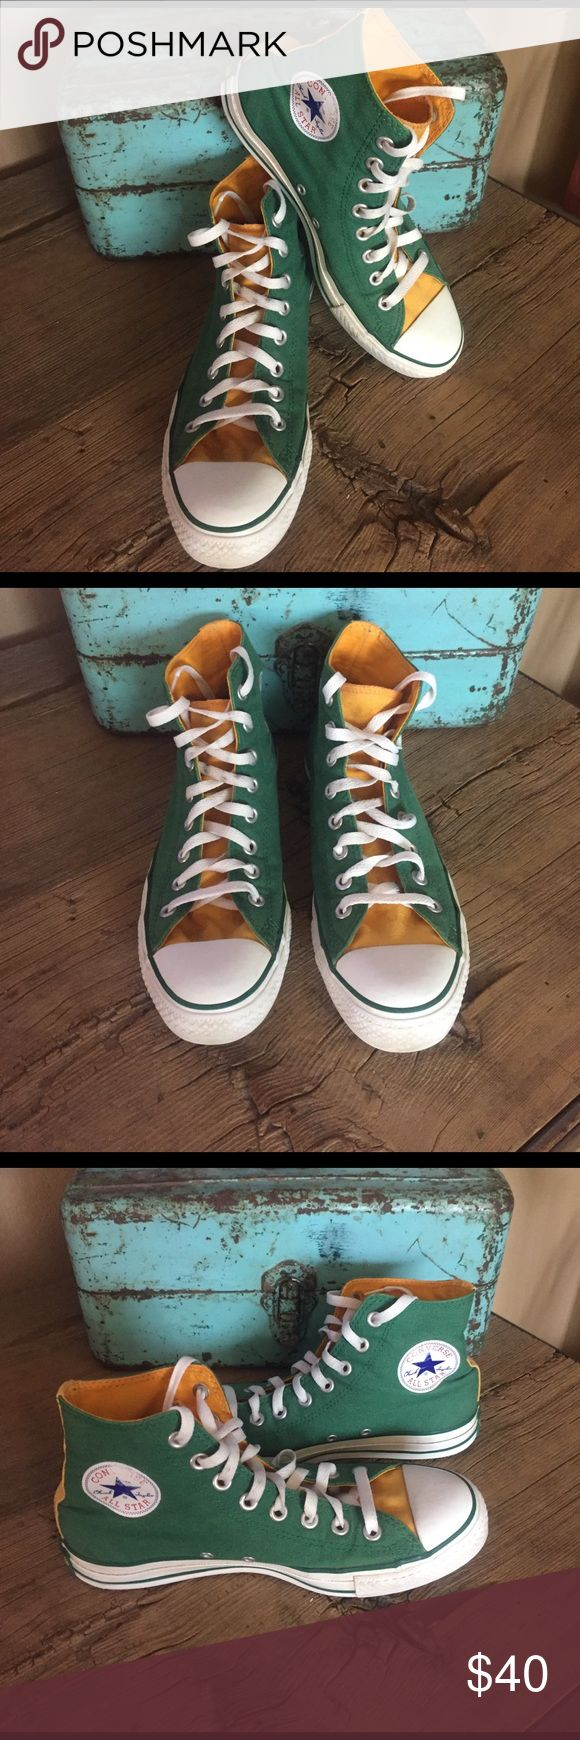 Converse Green/Yellow High Tops Women's Size 9/Men's Size 7. PREOWNED. Gently worn and tons of life left in these. I took photos of the converse logo on each shoe that are slightly faded so you know. Converse Shoes Sneakers